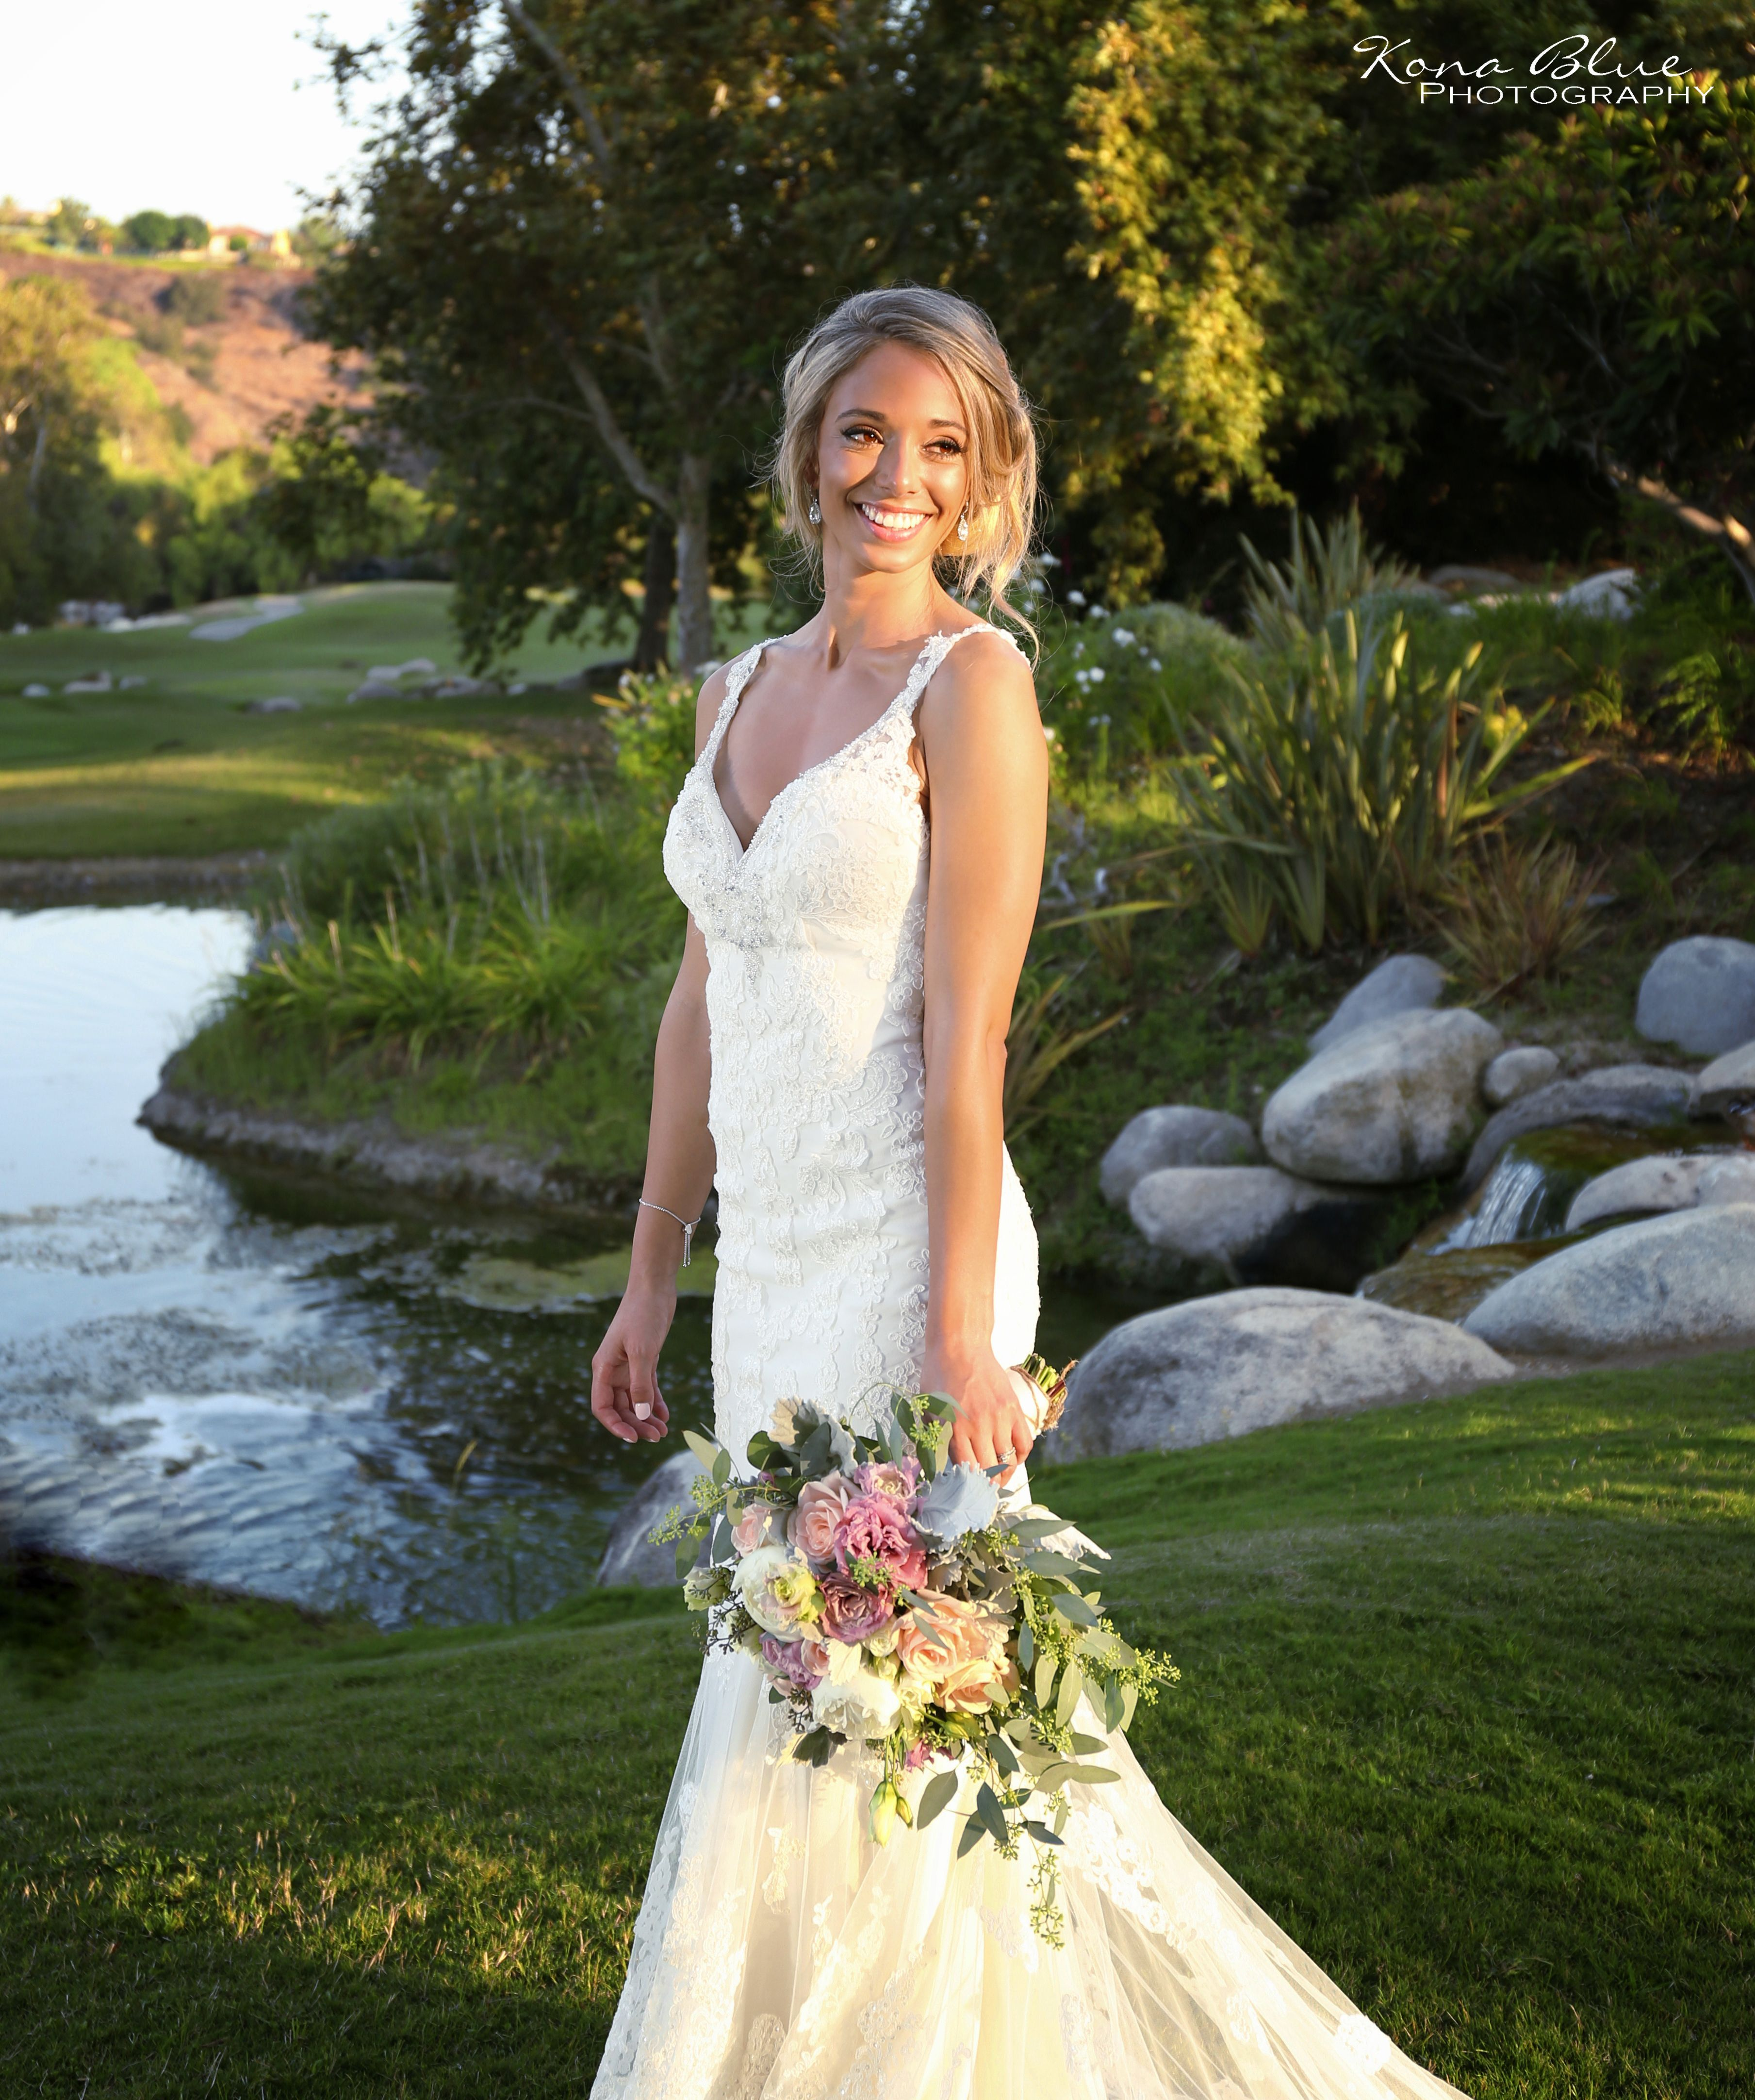 Golf Course Wedding Ideas: A Beautiful Wedding At Coyote Hills Golf Course